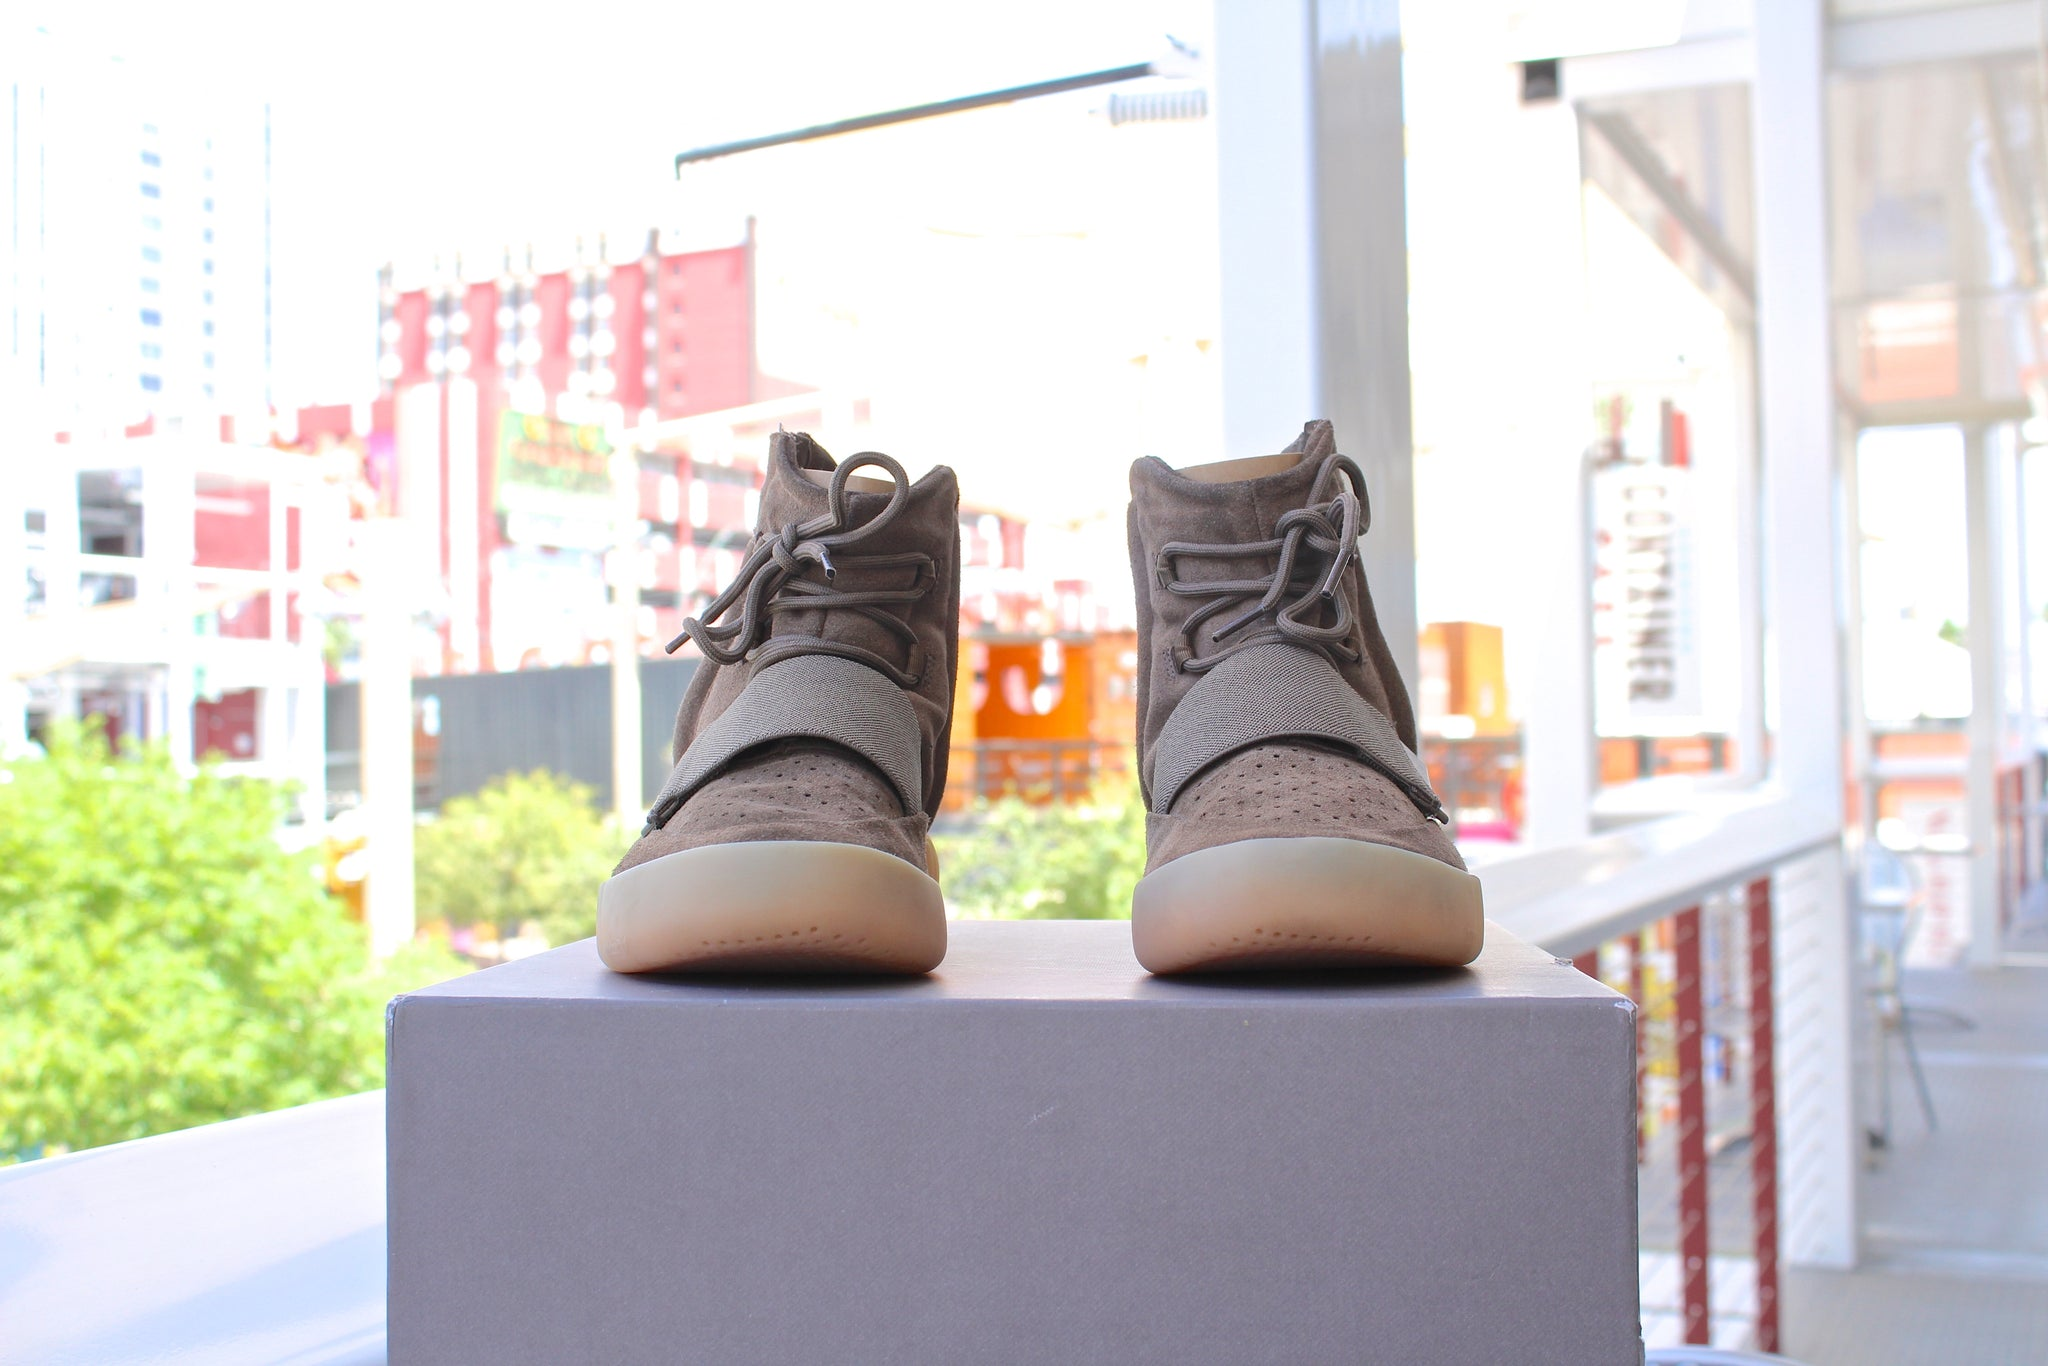 Adidas Yeezy Boost 750 (Chocolate)